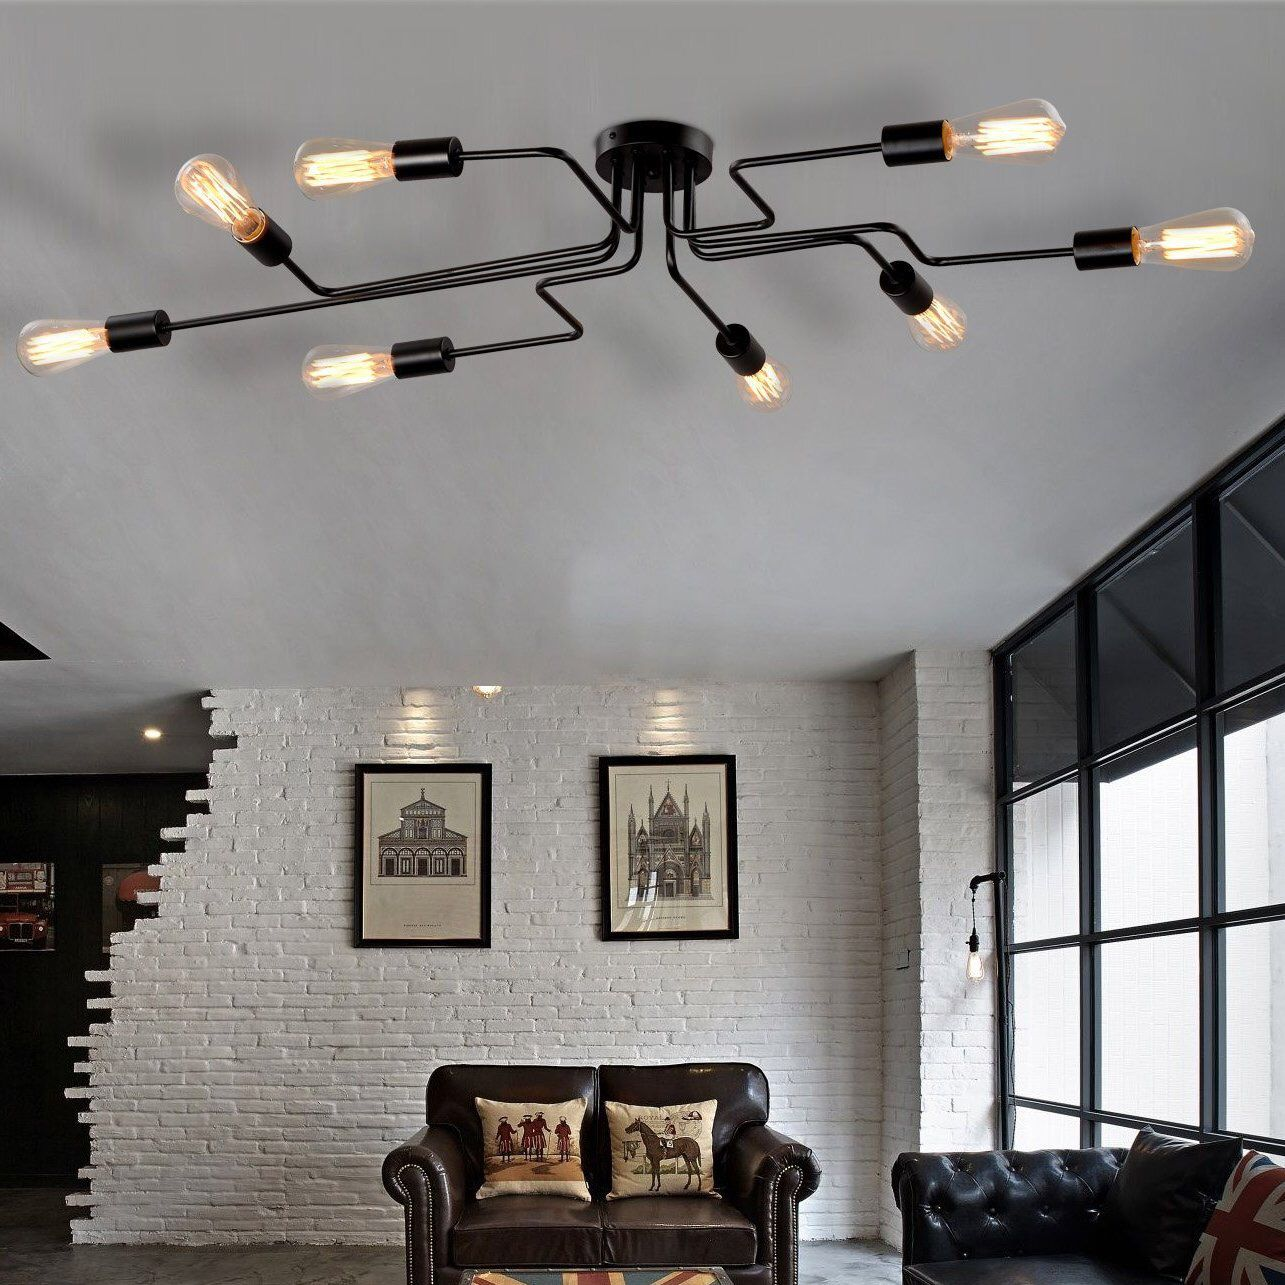 Steel Art 9-Light Semi Flush Mount  Living room lighting, Room